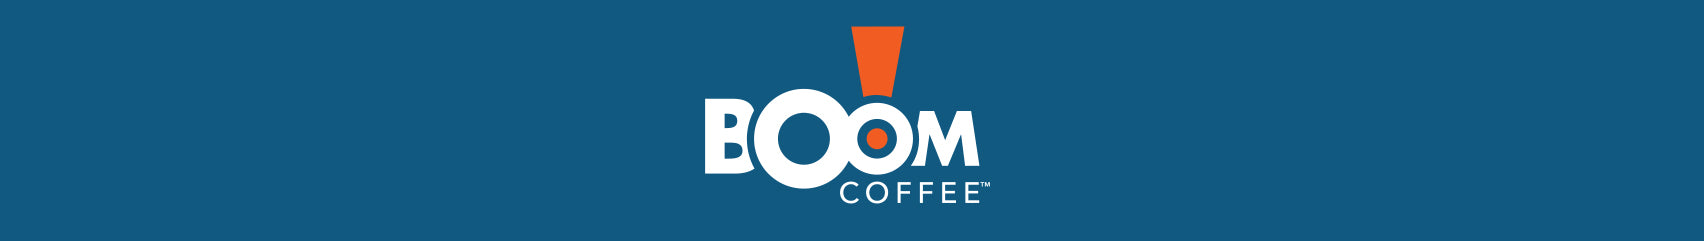 boom coffee banner logo in blue